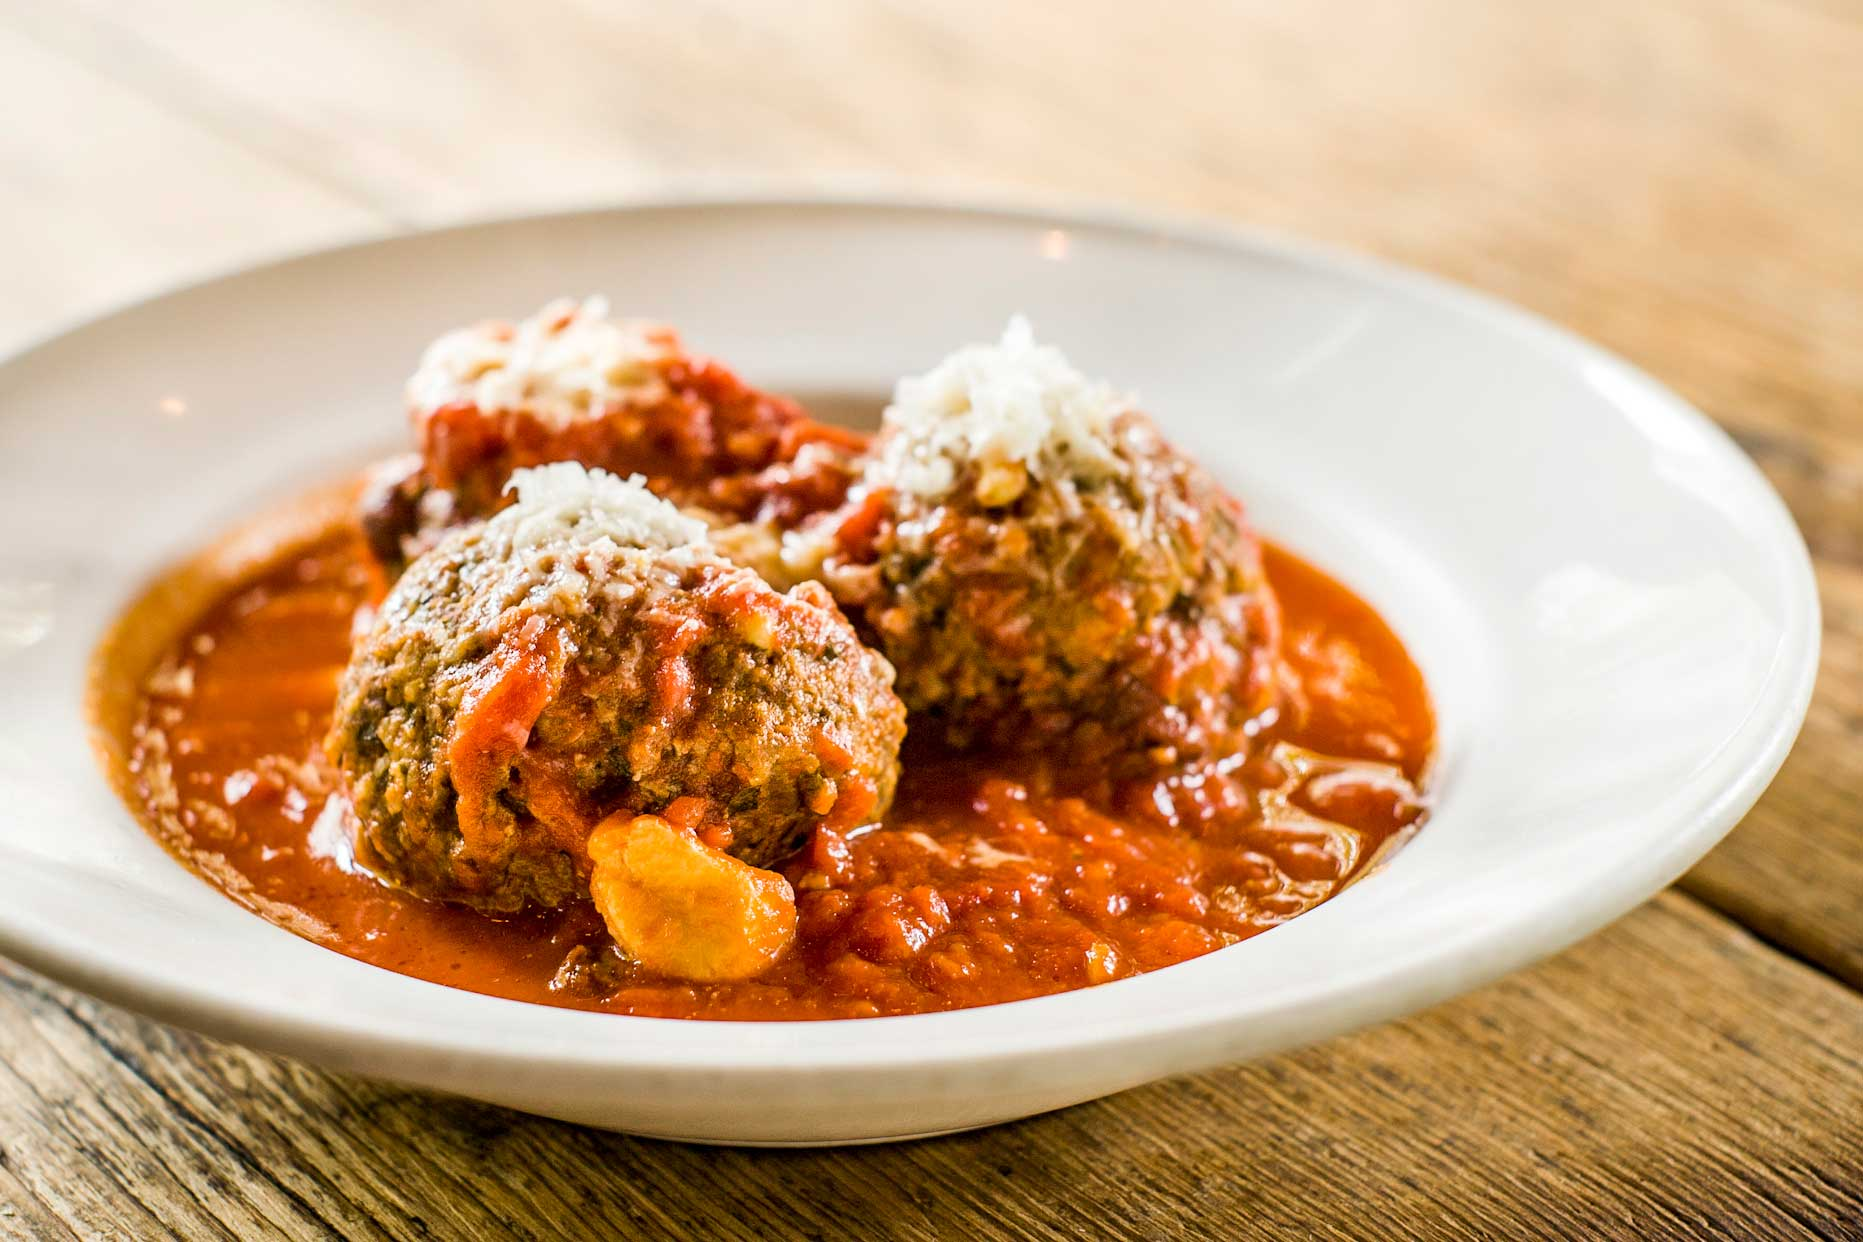 ... frankies meatballs photo frankie s meatballs were so frankies